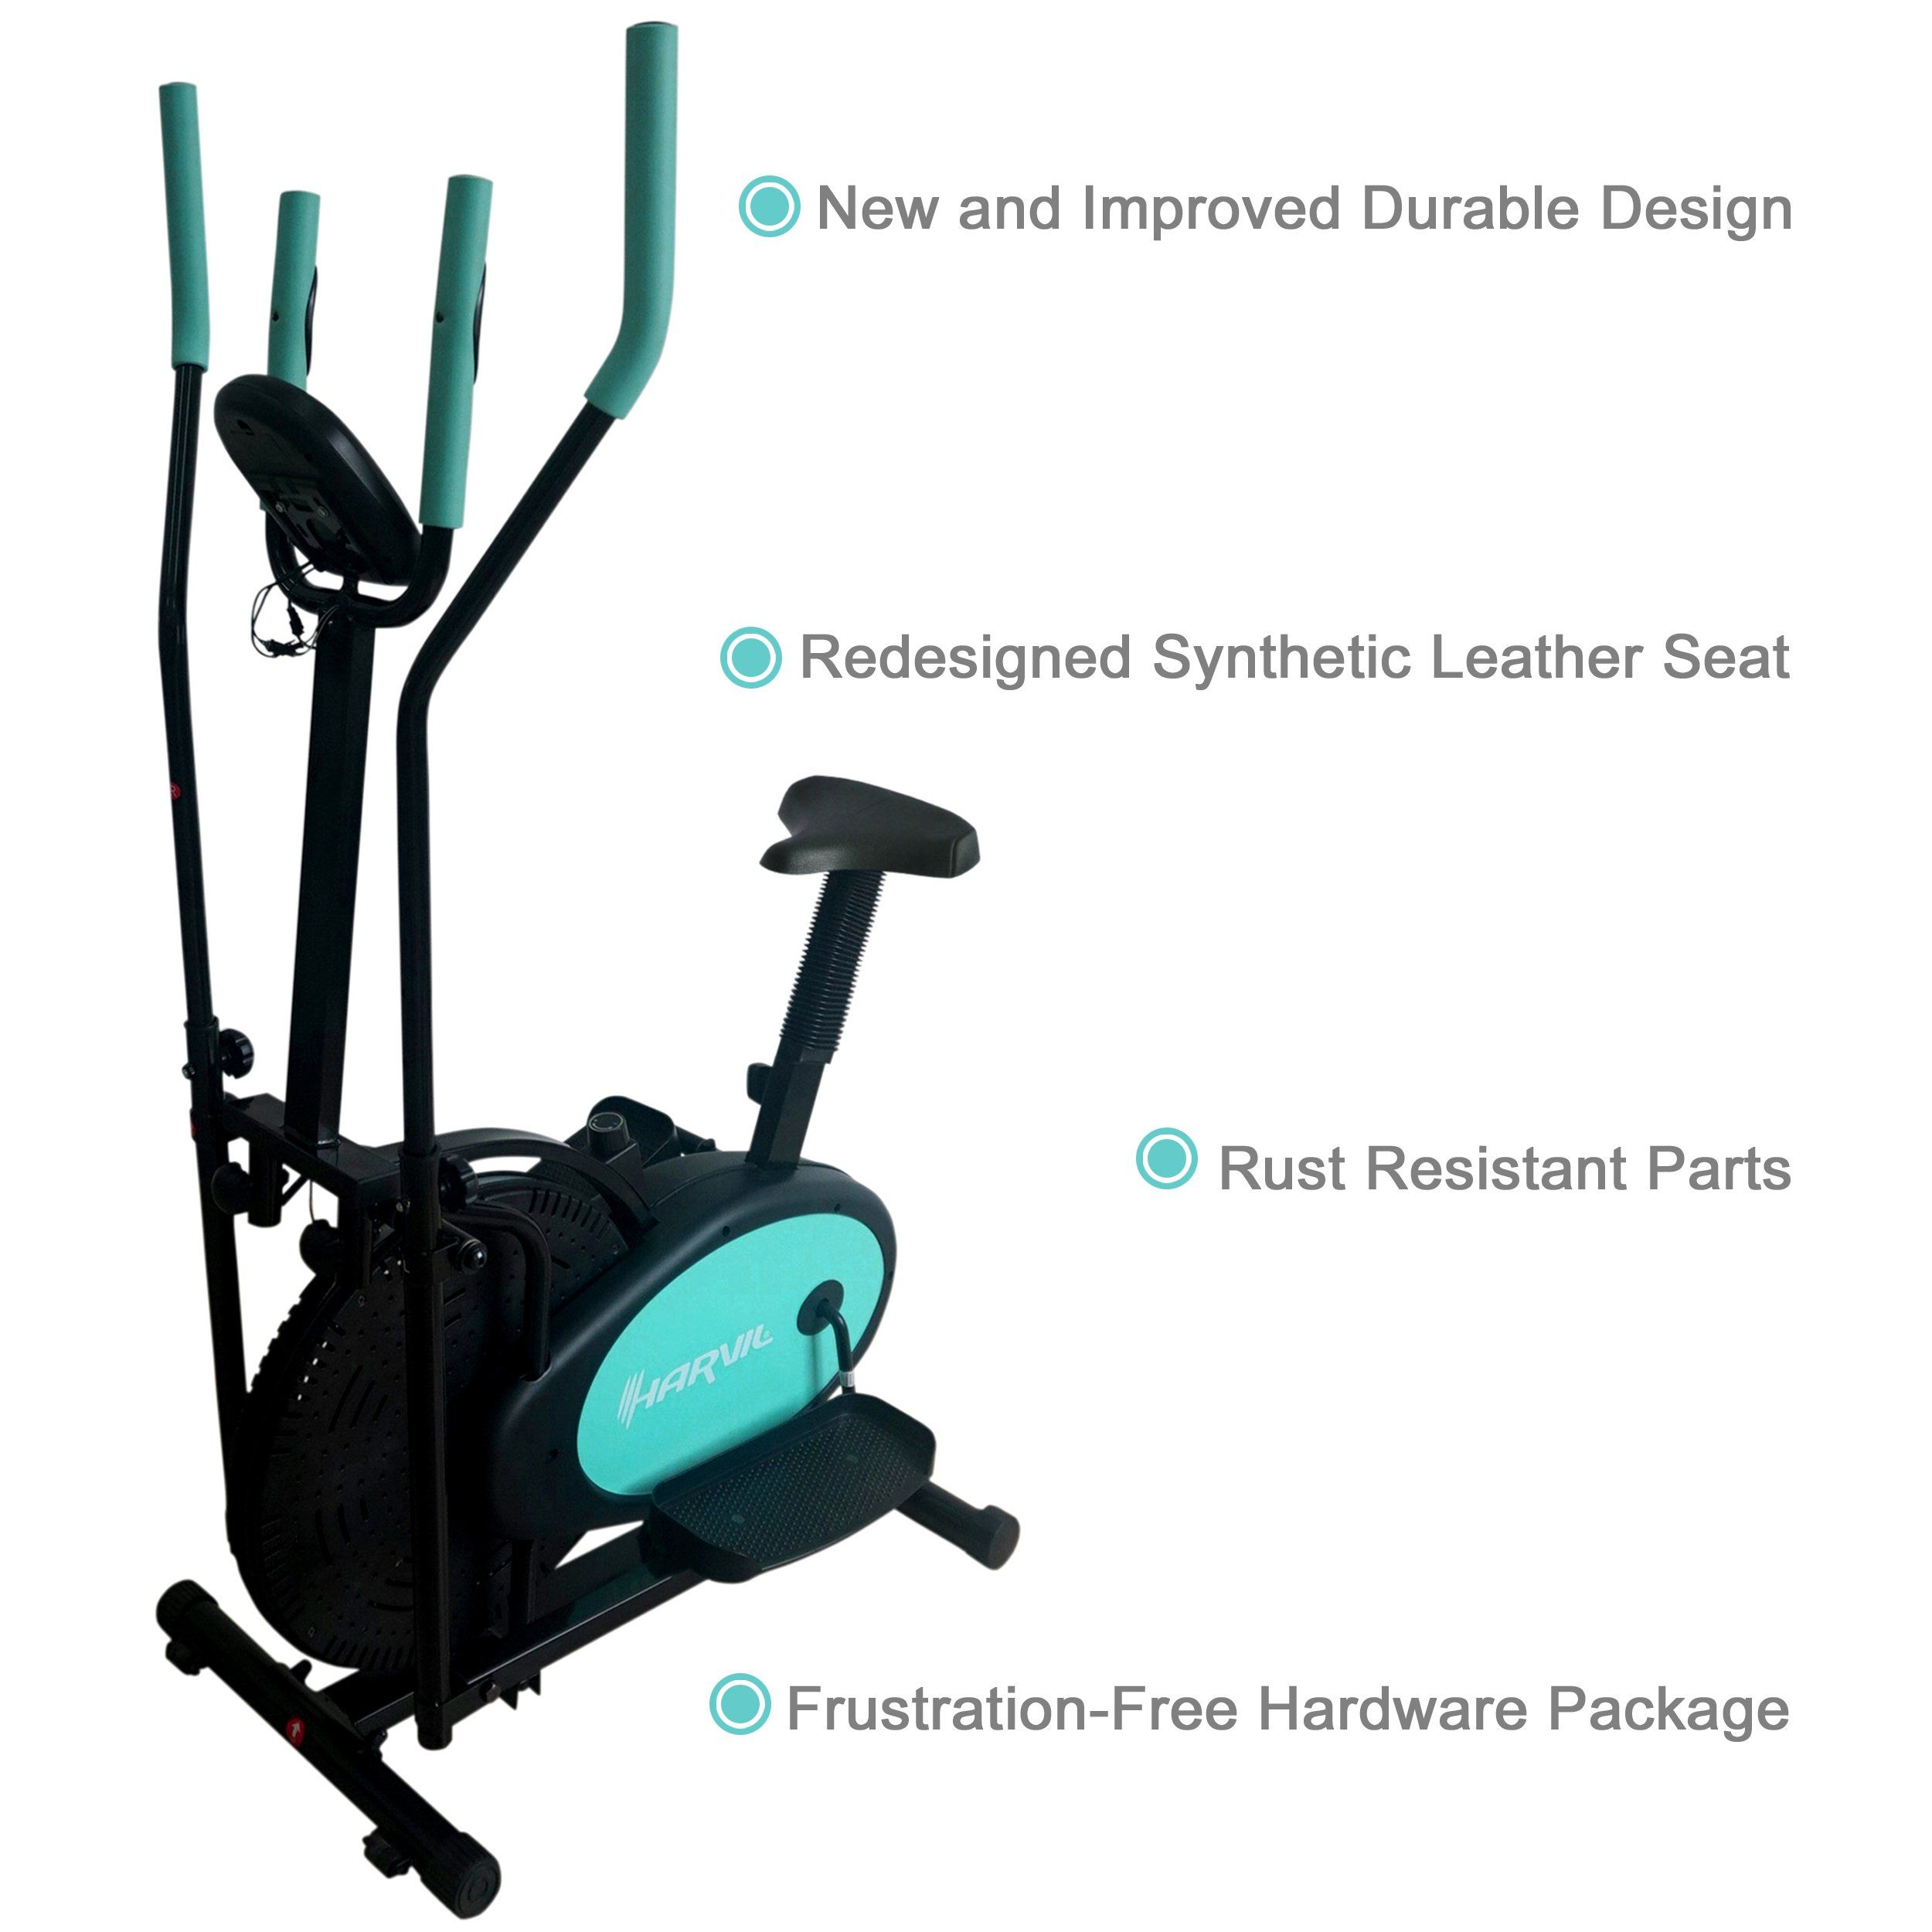 Harvil Elliptical Cross Trainer And Exercise Bike 2 In 1 With